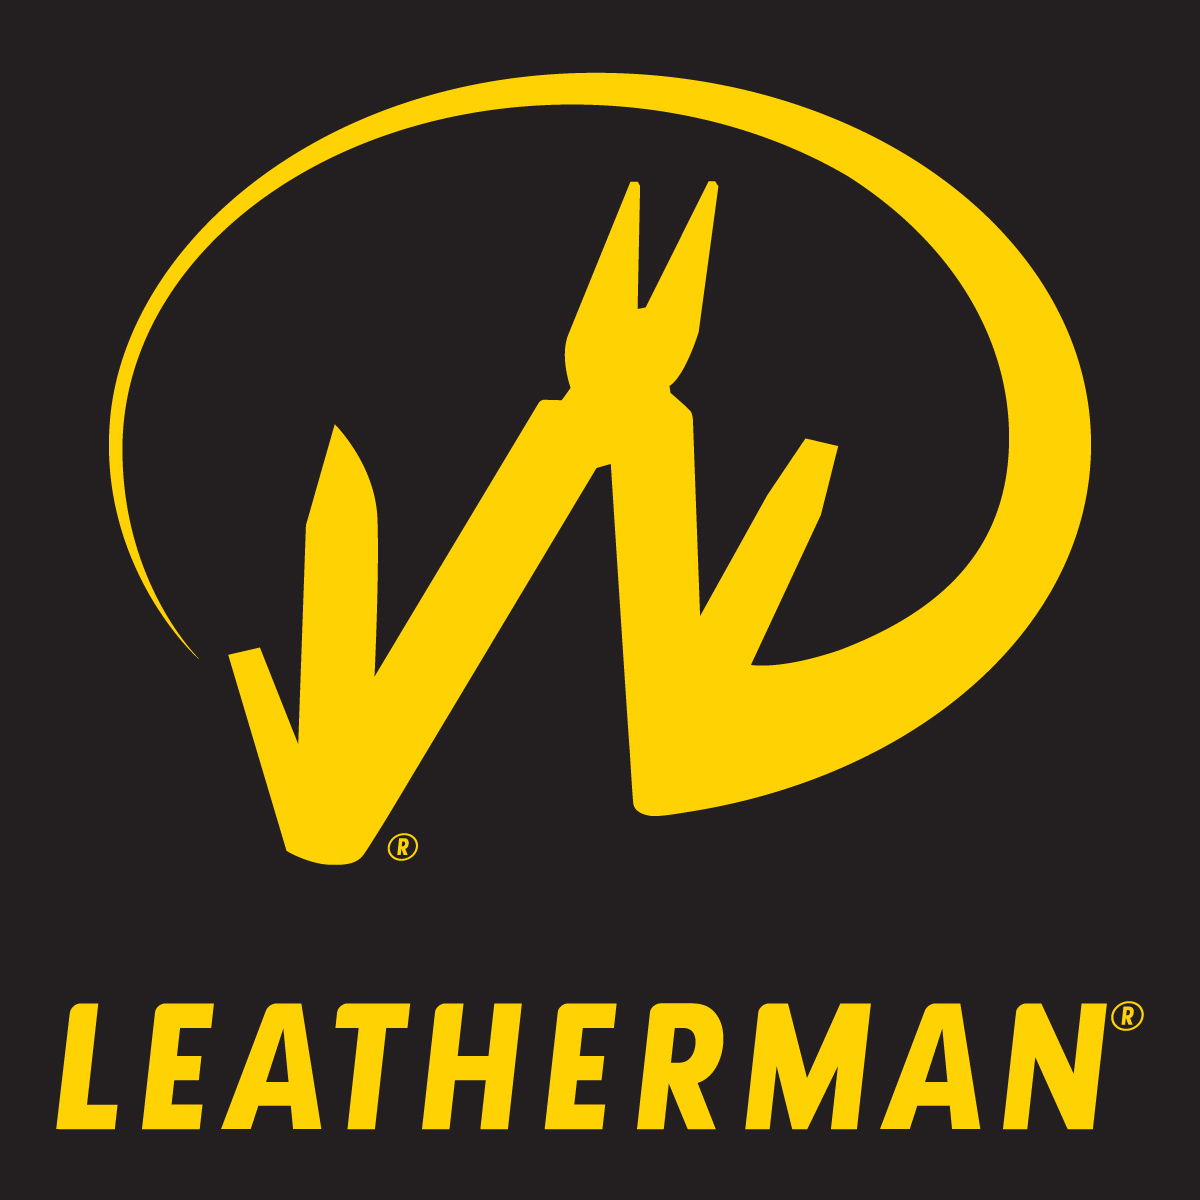 Leatherman Tools, Leatherman Multifunction Tools